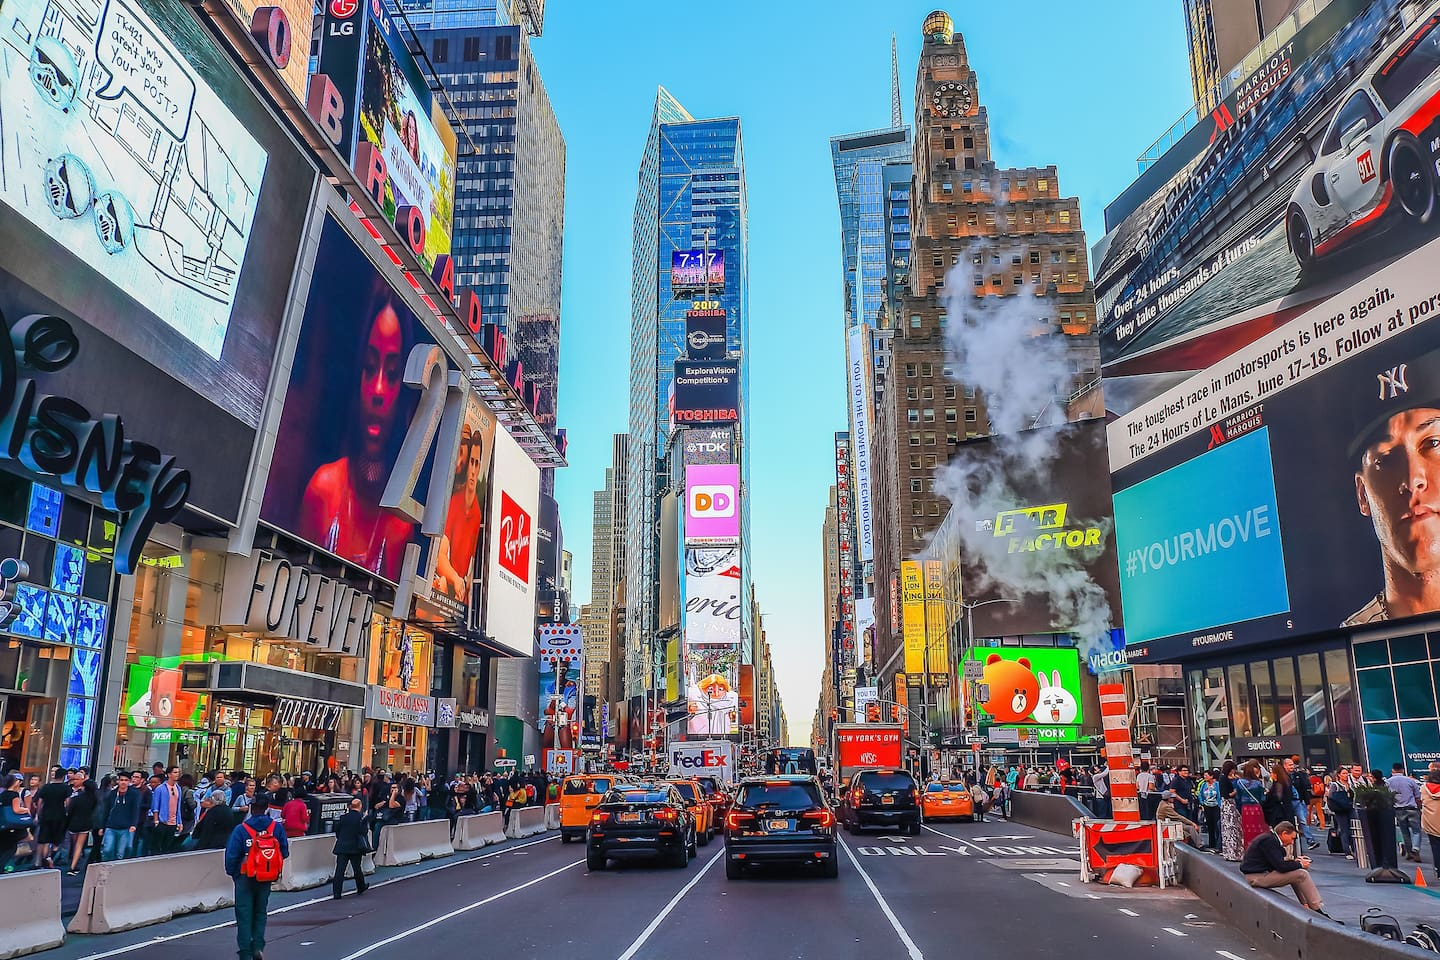 Steps away from Times Square